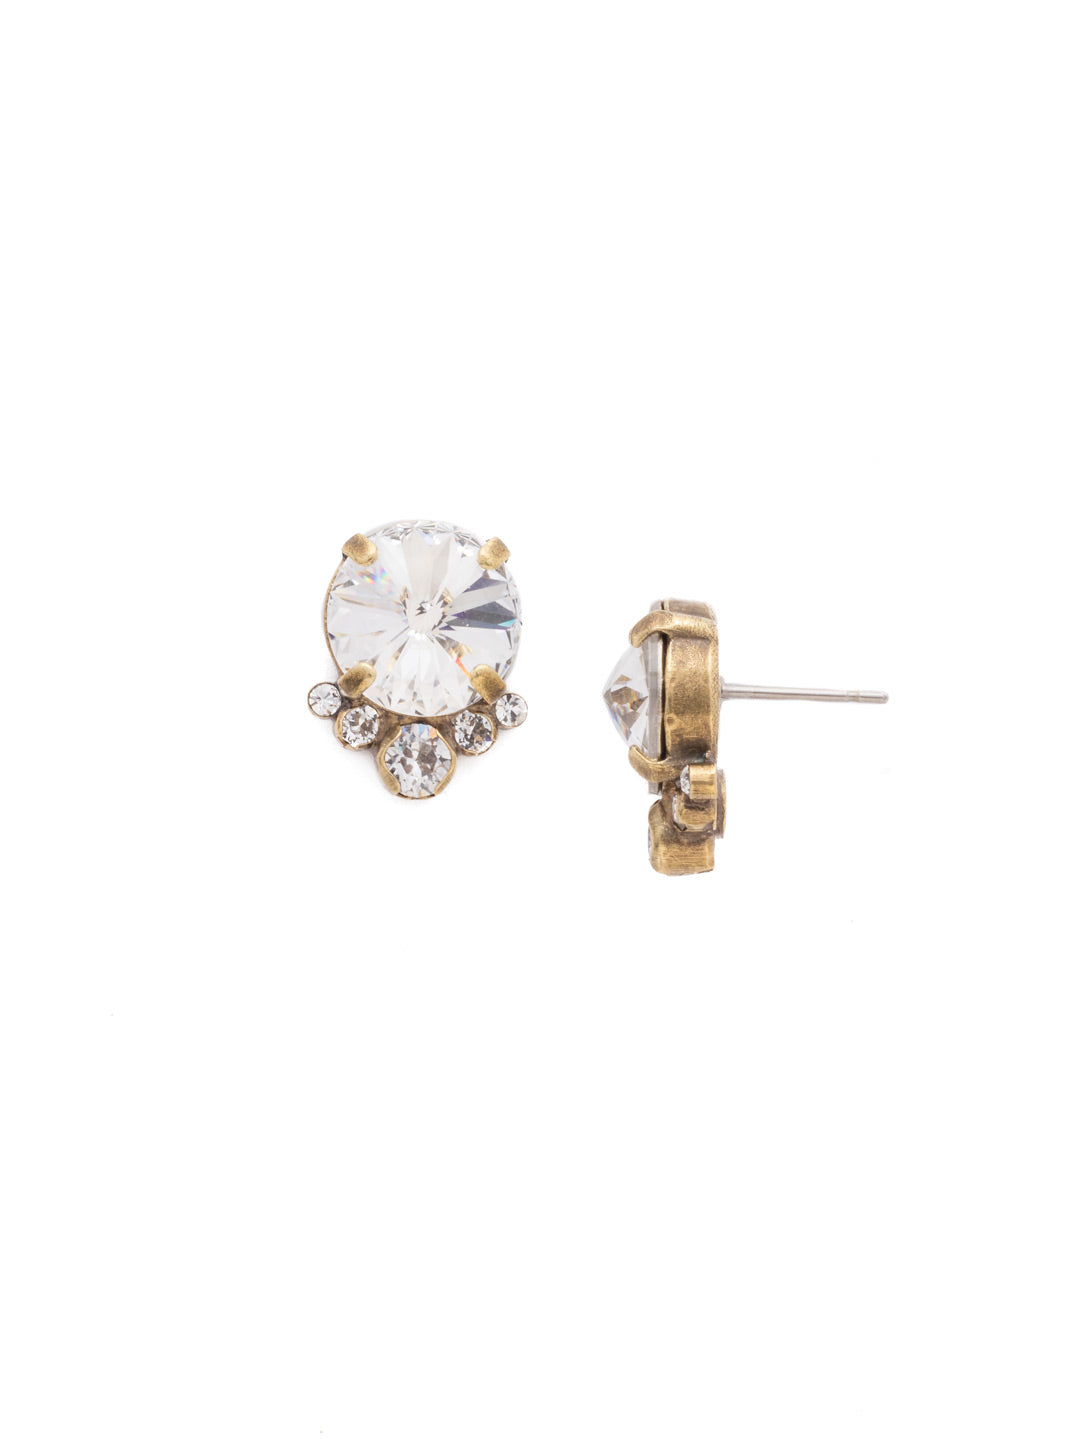 Regal Rounds Stud Earrings - EDH98AGCRY